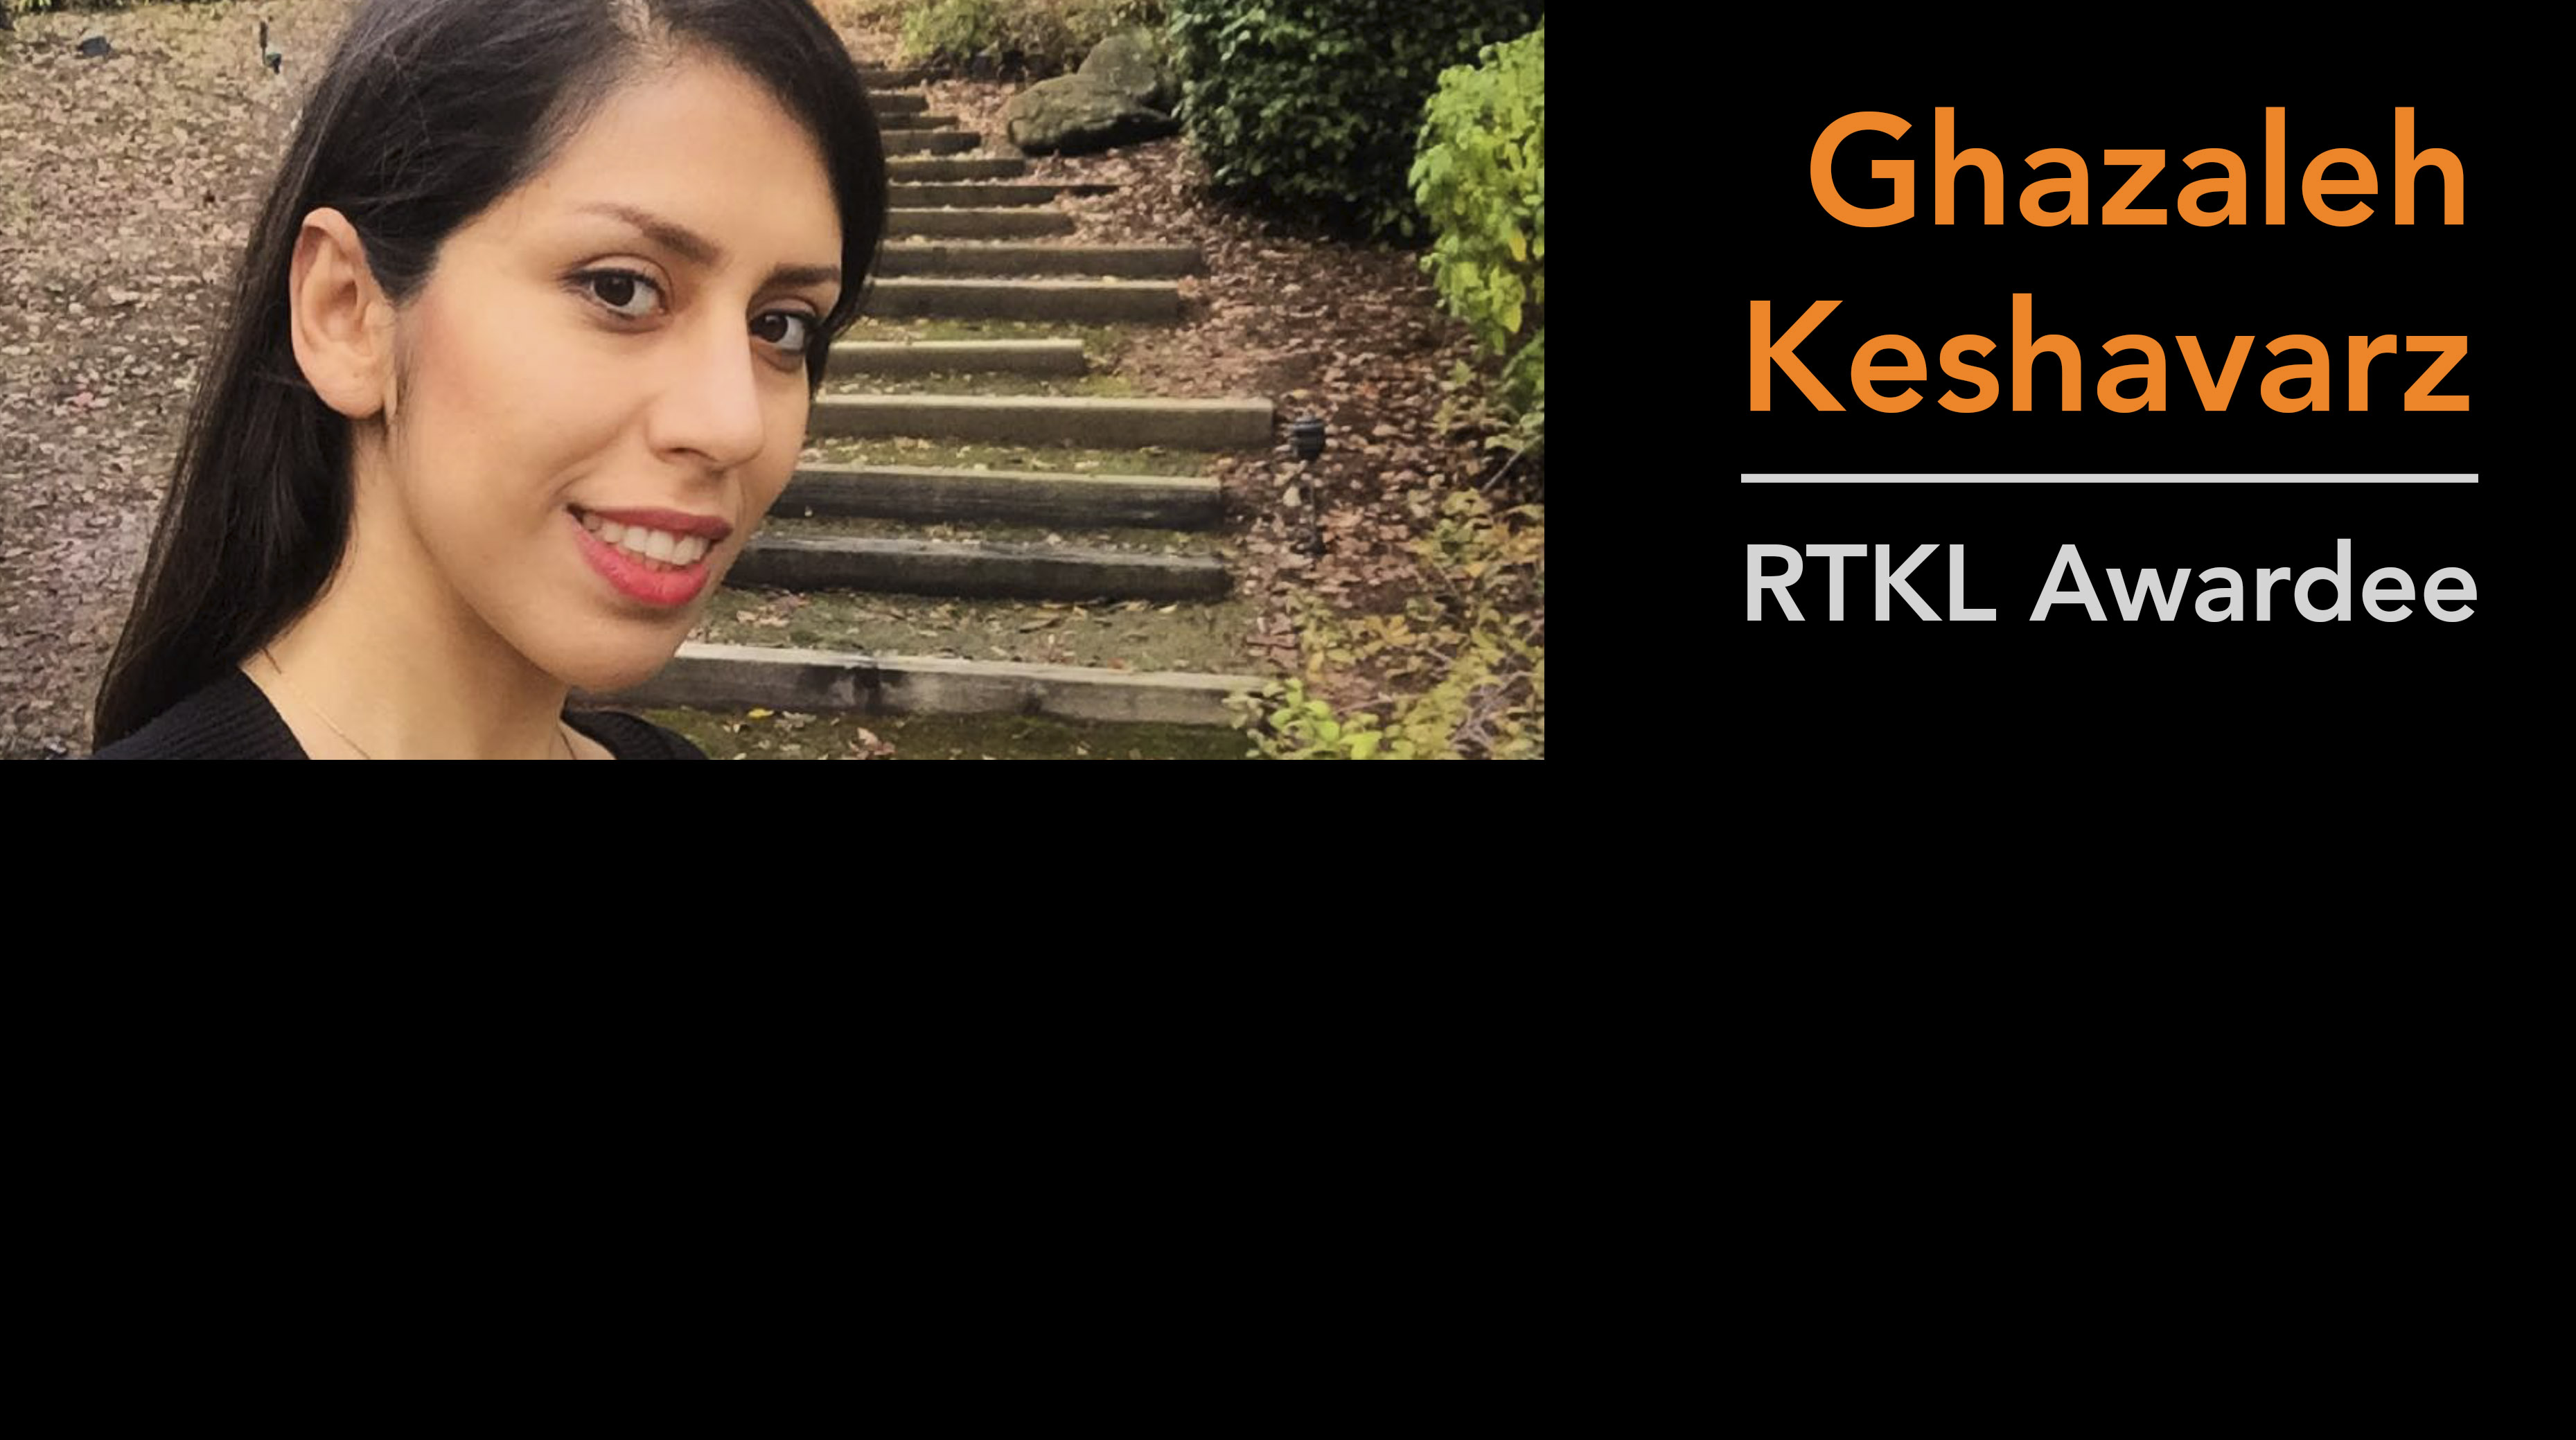 RTKL Awardee Ghazaleh Keshavarz's Talk @ CADVC, April 27th @ 2pm